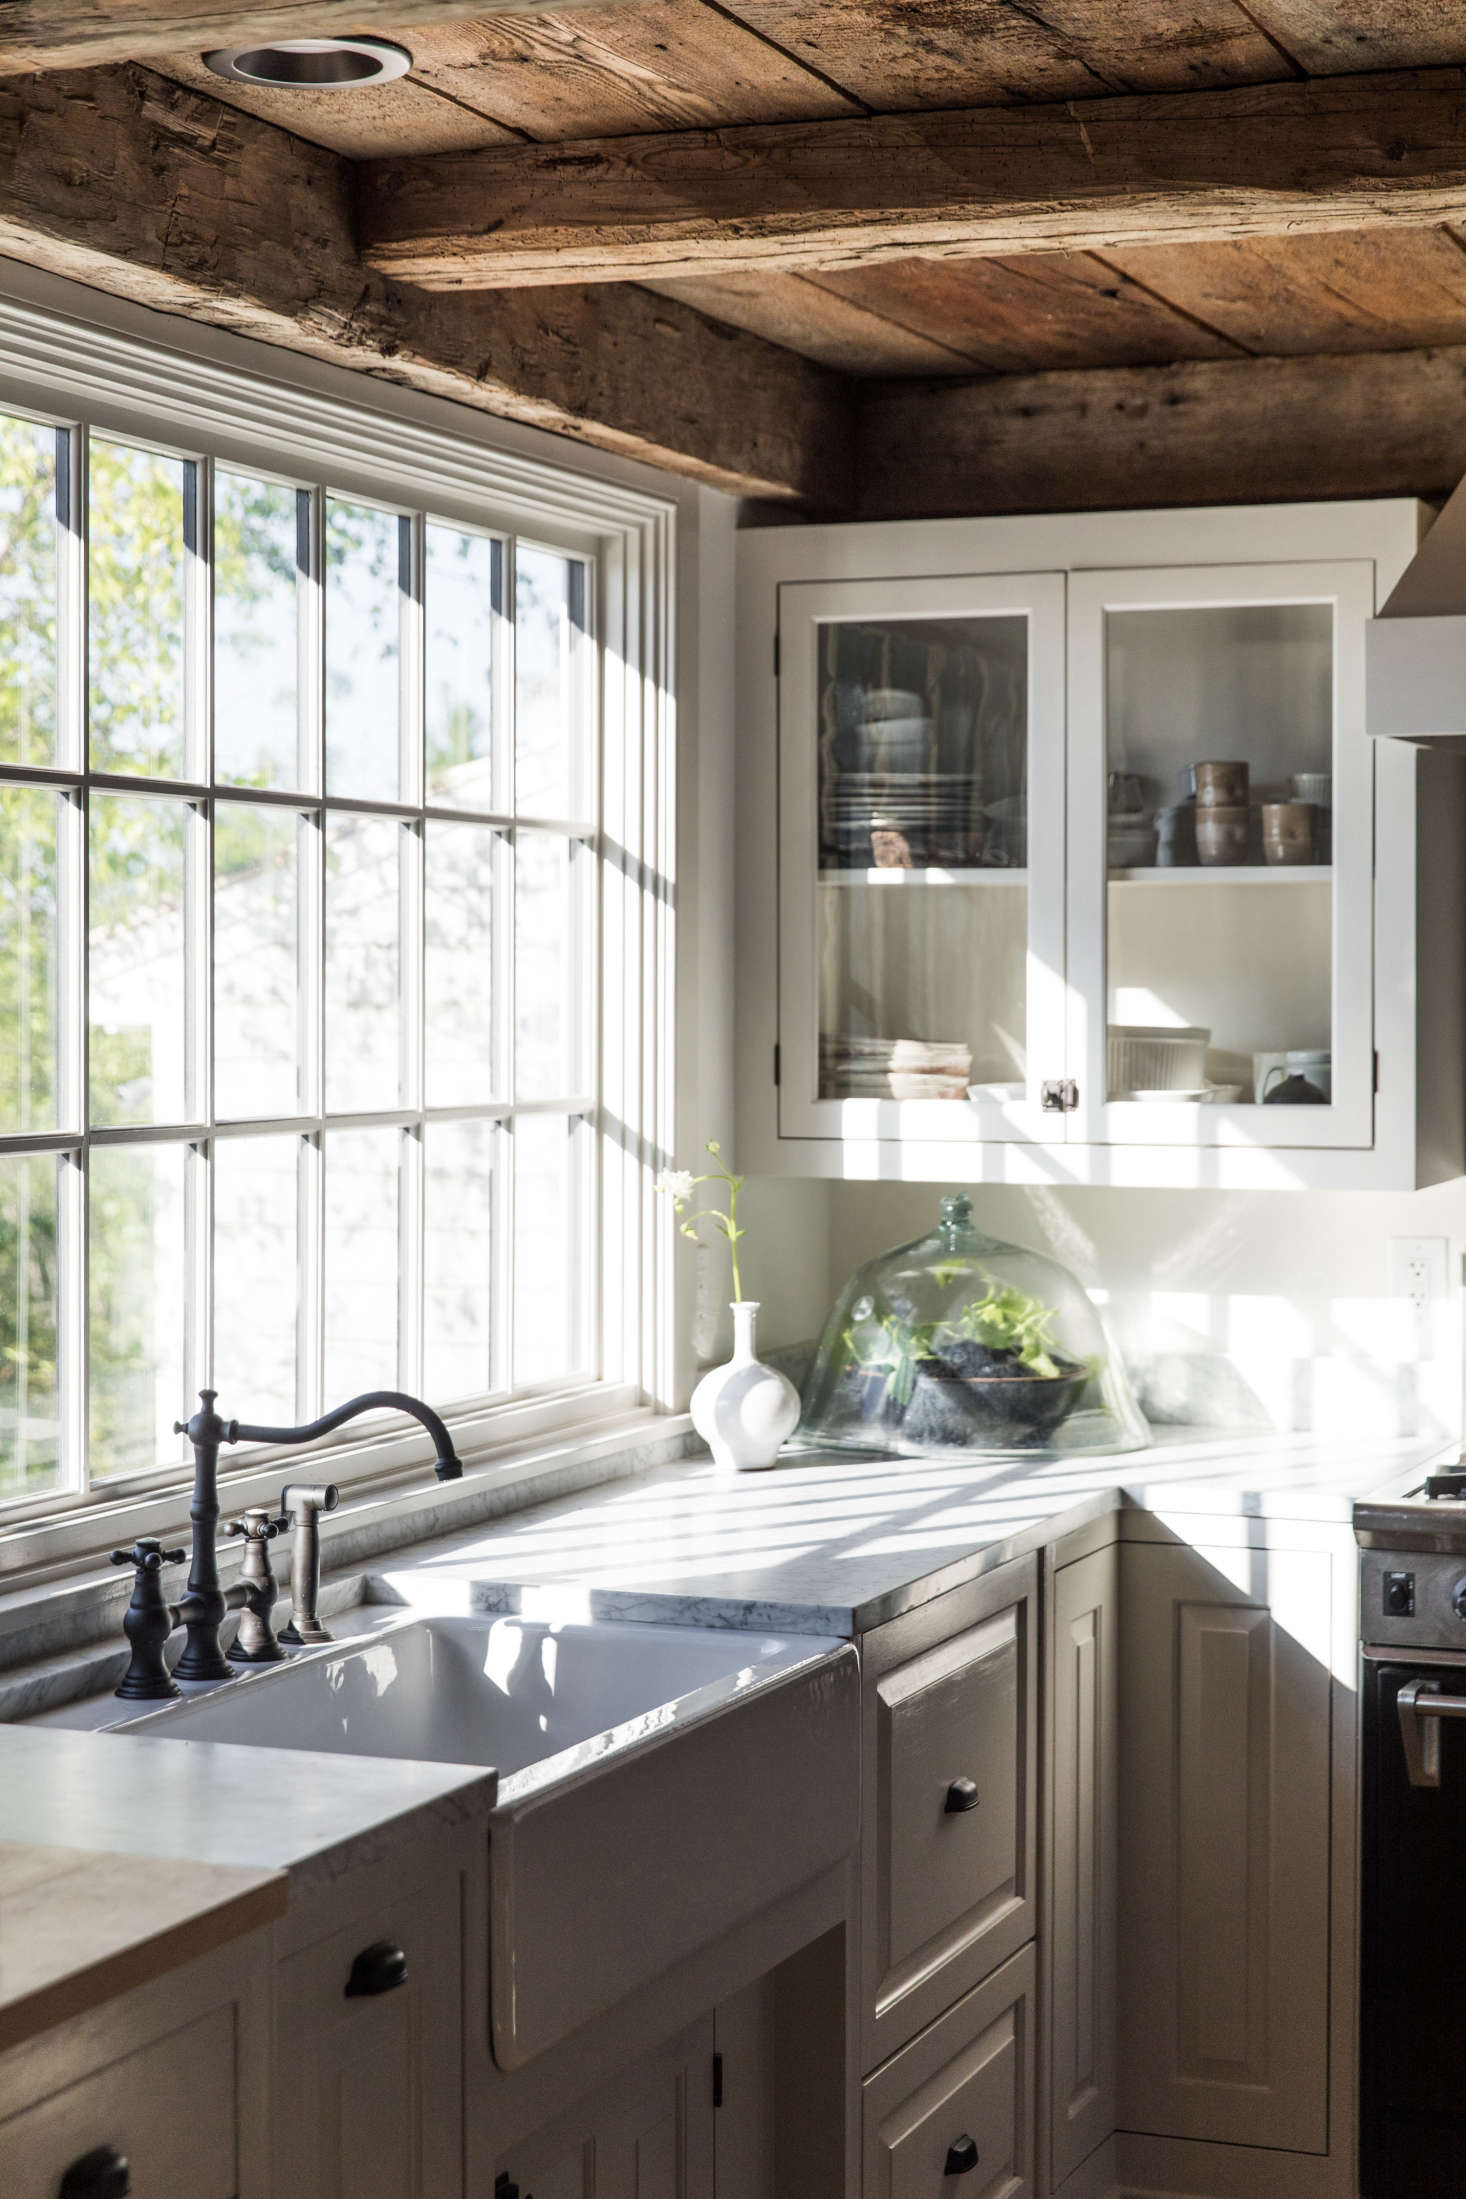 In the kitchen, light filters in through the original paned windows.